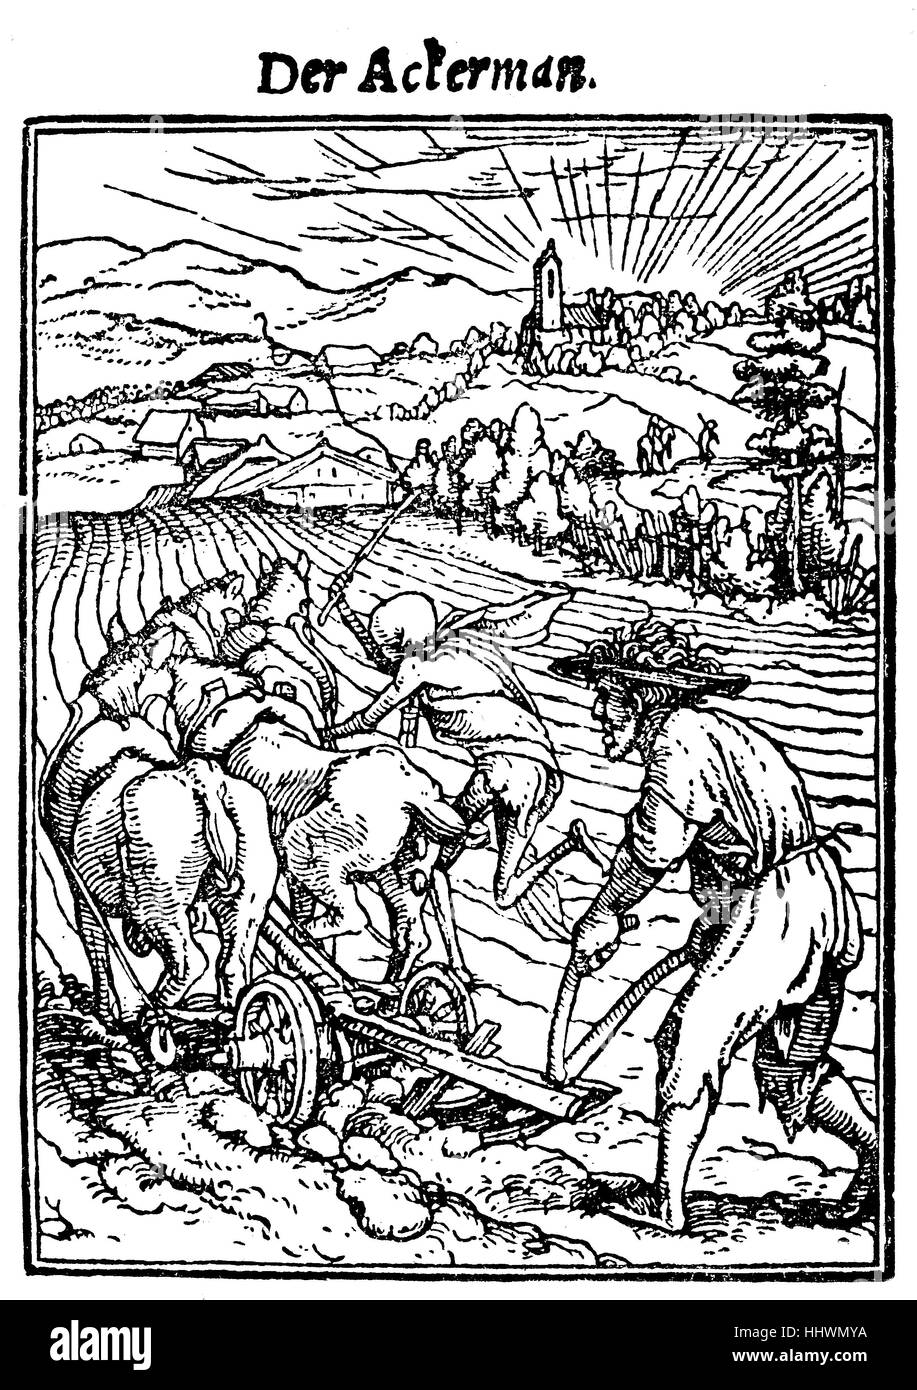 Der Ackerman, Woodcut from the Totentanz by Hans Holbein der Juengere, German Renaissance painter, historical image - Stock Image